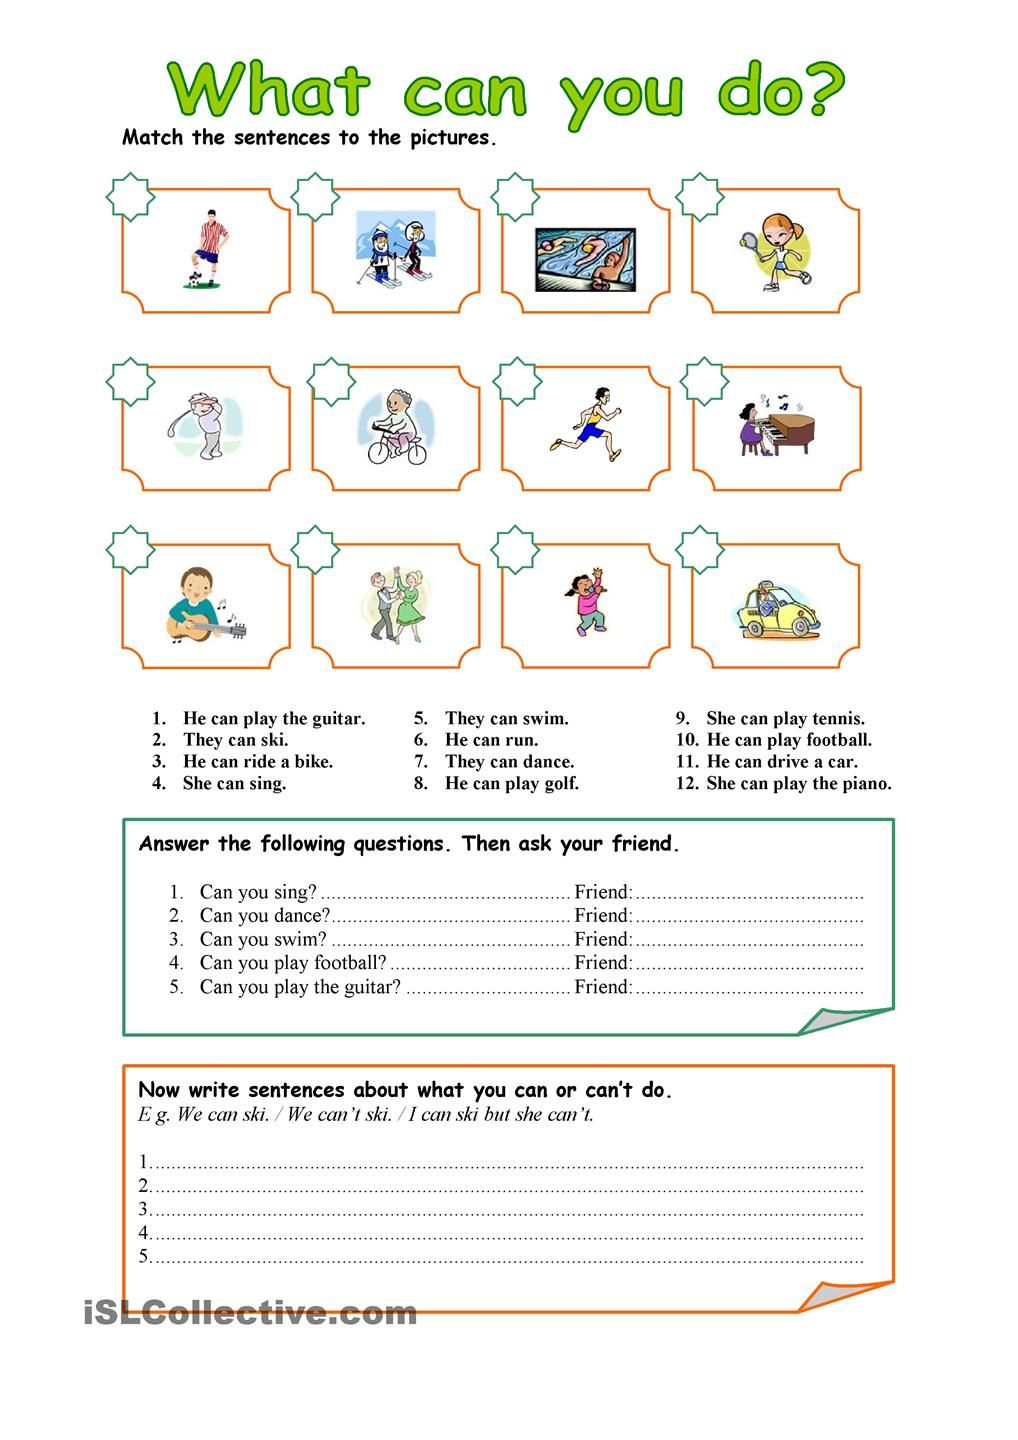 worksheet Dance Worksheets cancant for abilities exercises english activities pinterest can cant worksheet free esl printable worksheets made by teachers